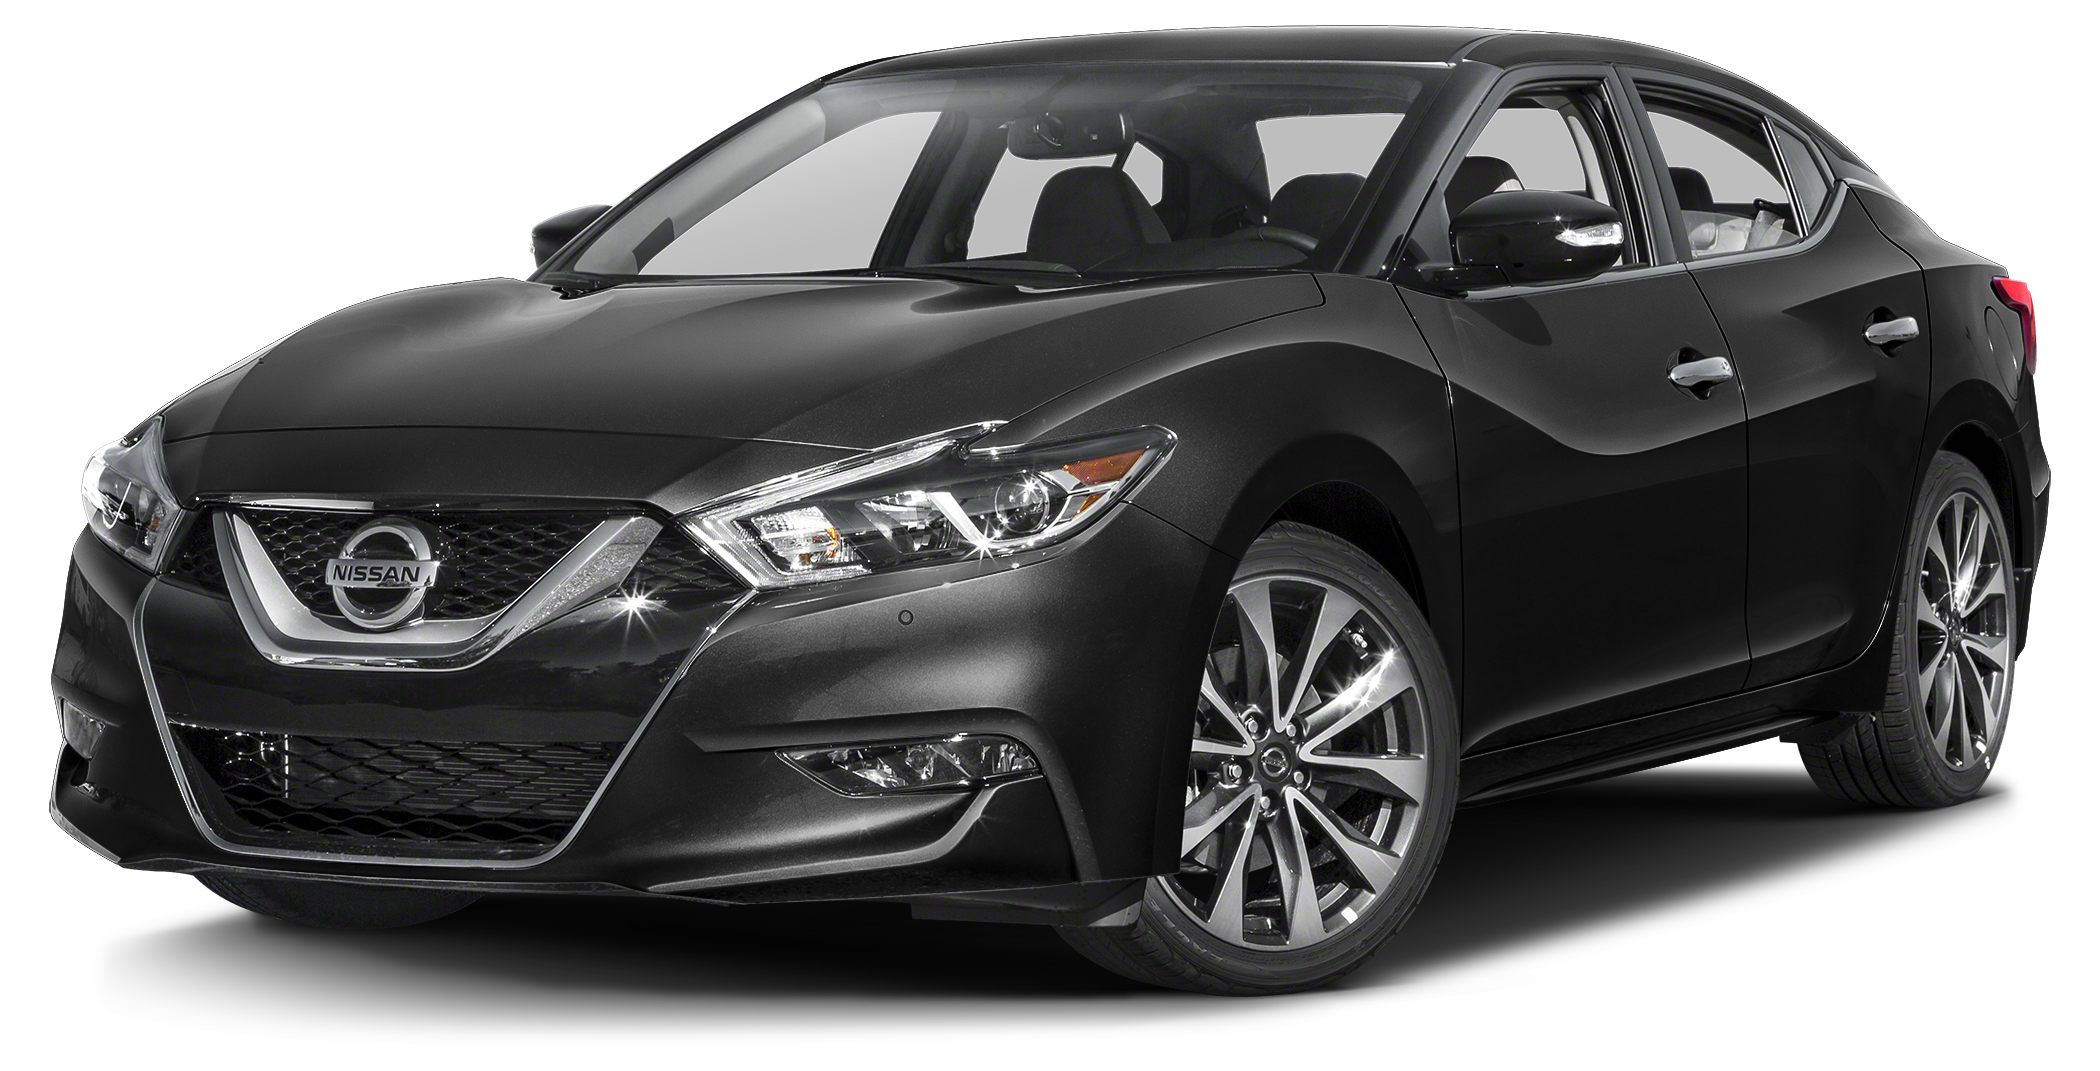 2016 Nissan Maxima 35 SR SR Sport Edition - Navigation - Super Black on Premium Charcoal Black As